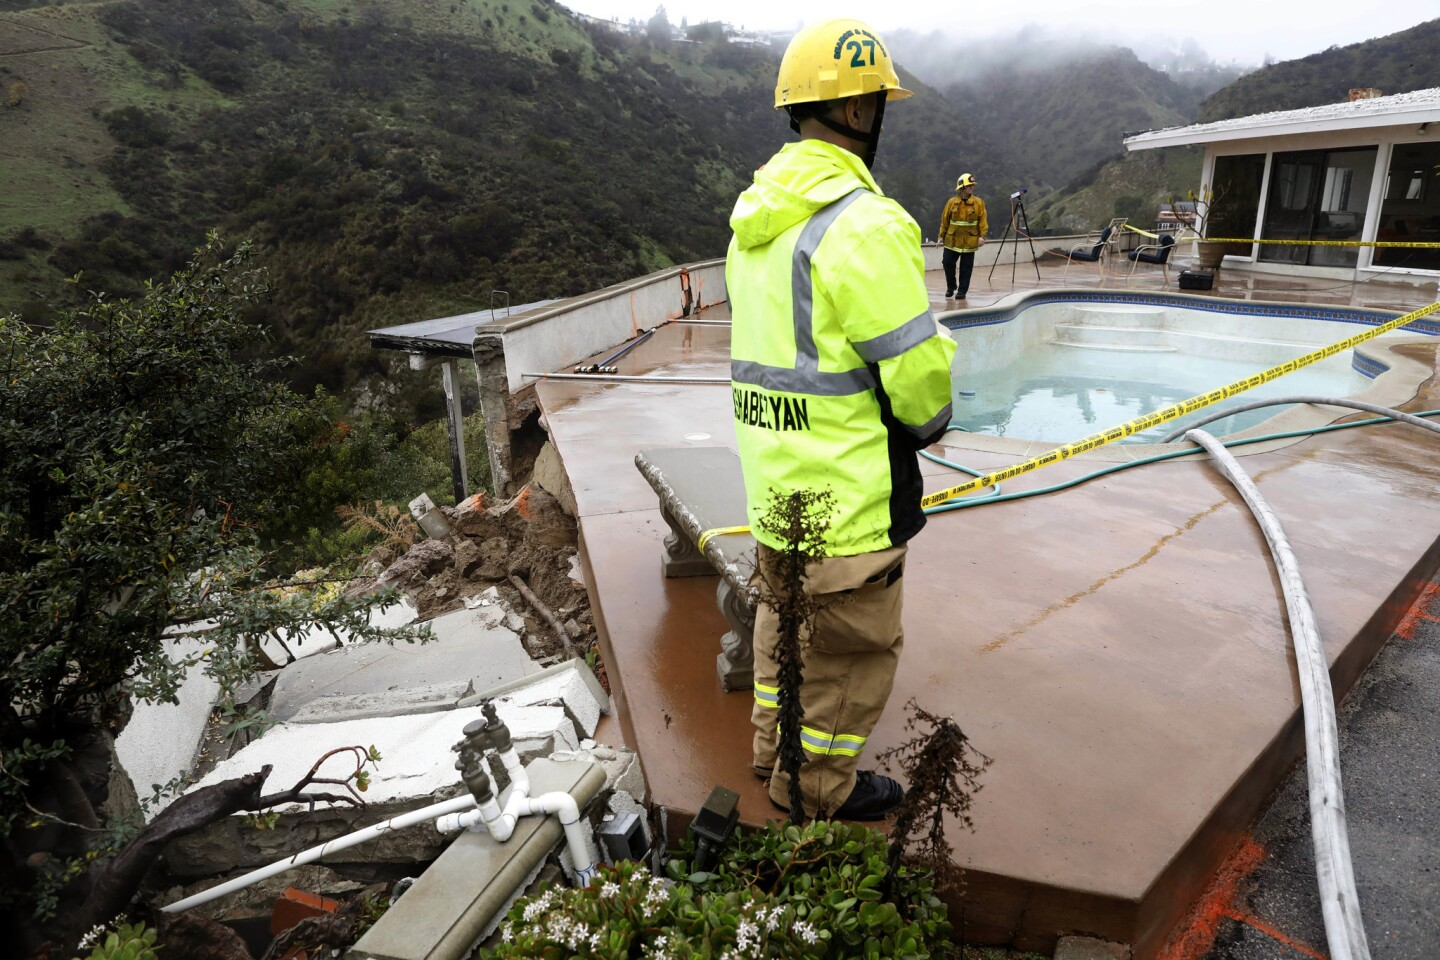 L.A. firefighters oversee drainage of a pool in the yard of a Hollywood Hills home. The pool was compromised as soil shifted during the recent rains.